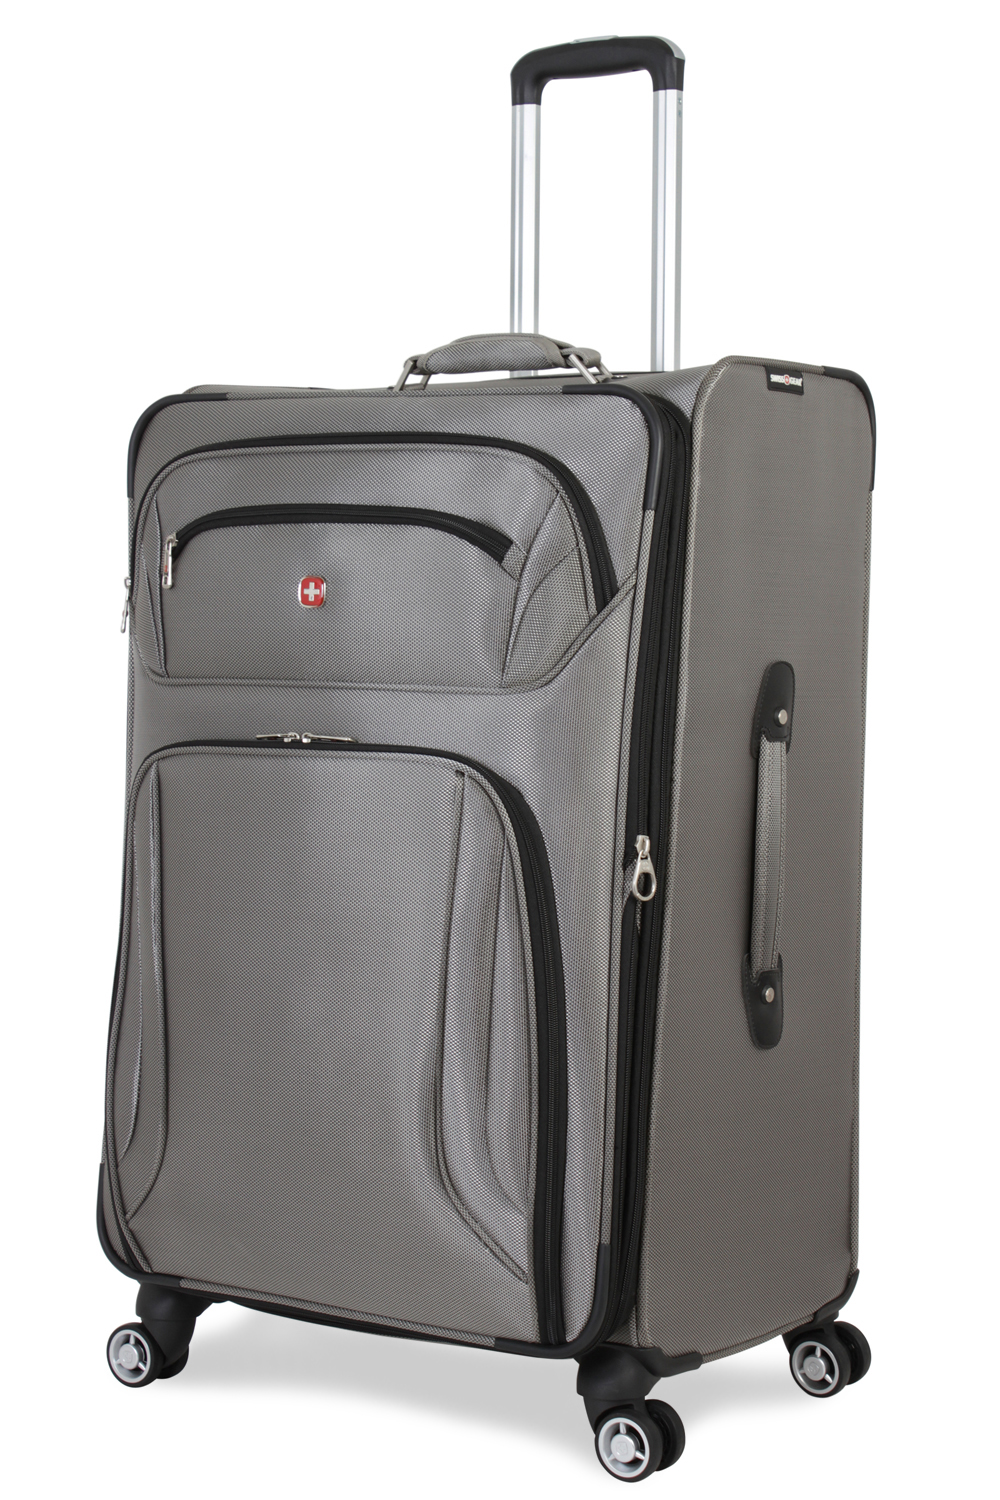 SWISSGEAR 7895 29 Expandable Deluxe Spinner - Pewter Luggage